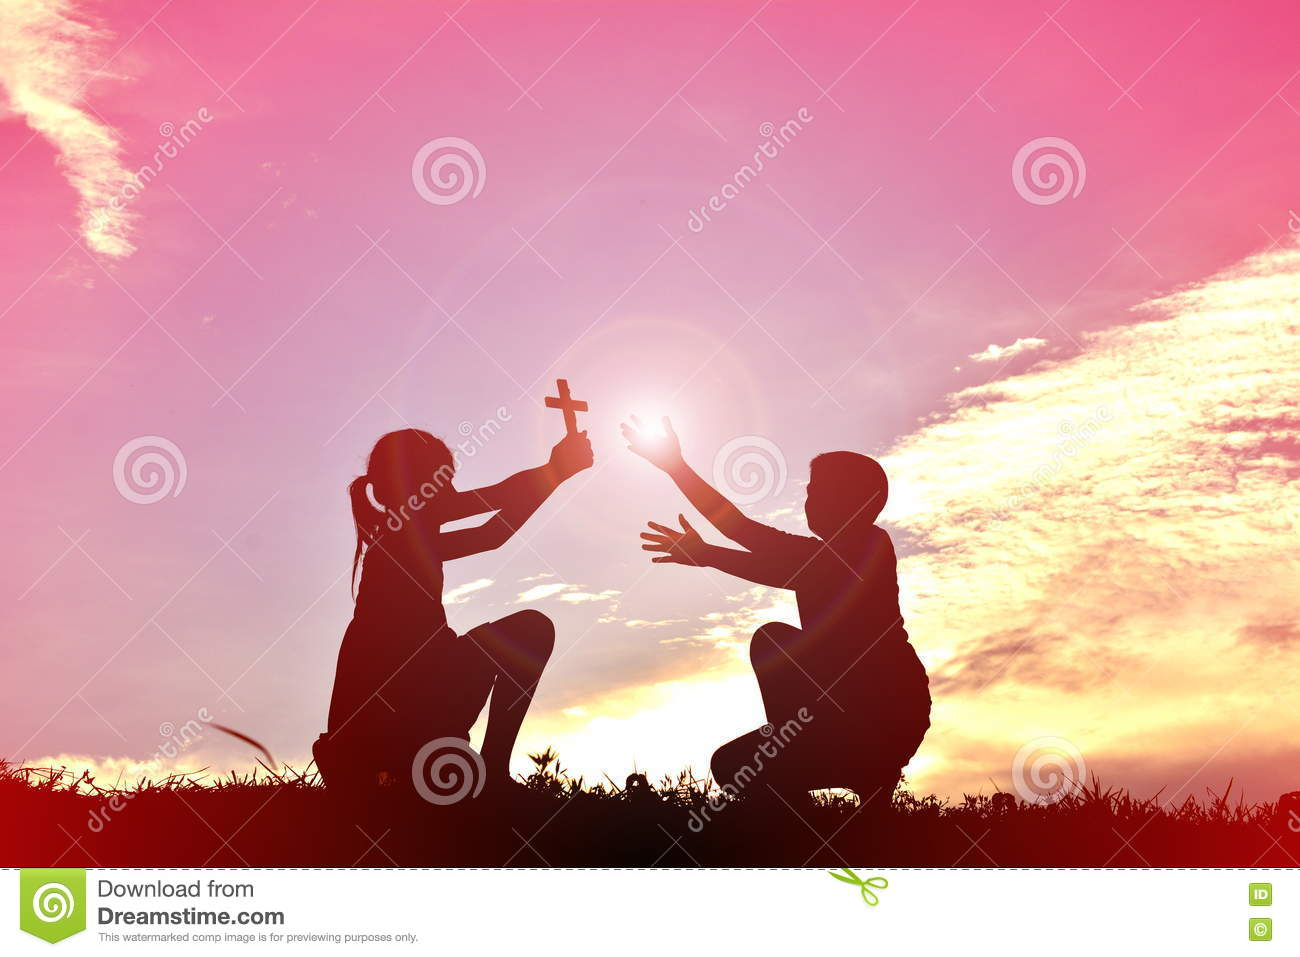 Silhouette Children Plants A Tree Stock Photo - Image of believe ...